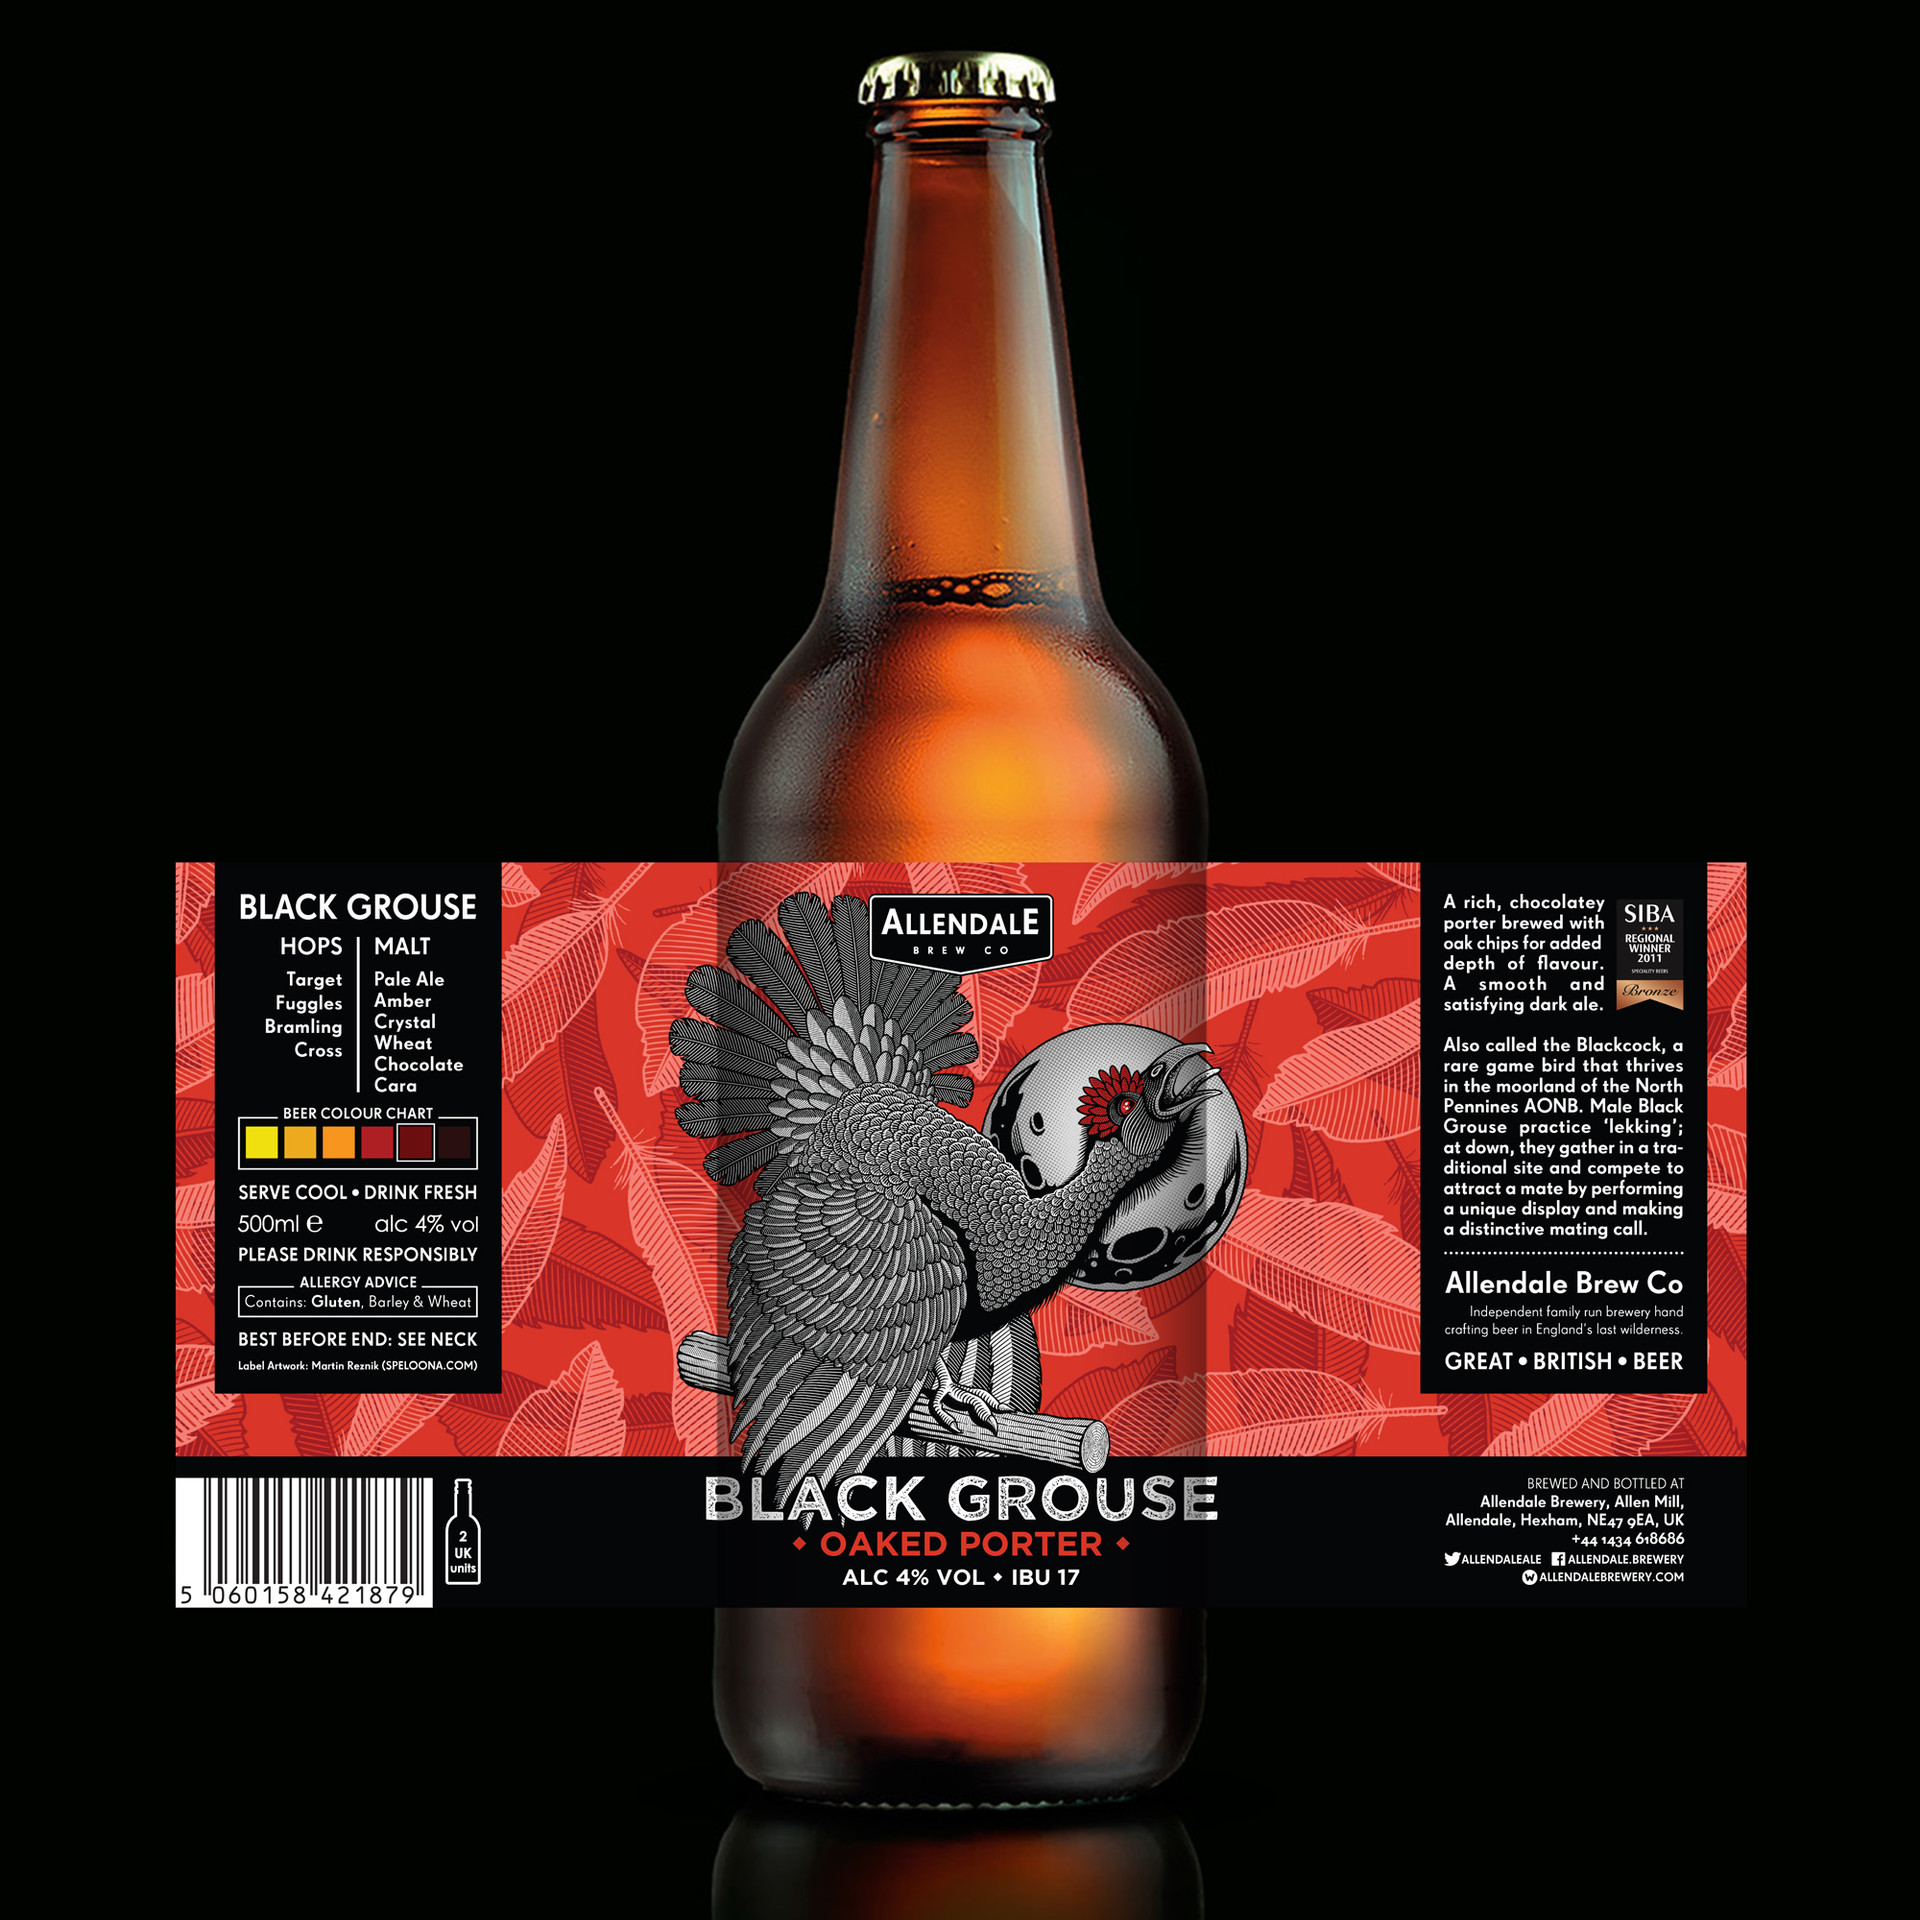 allendale-black-grouse-beer-bottle-label